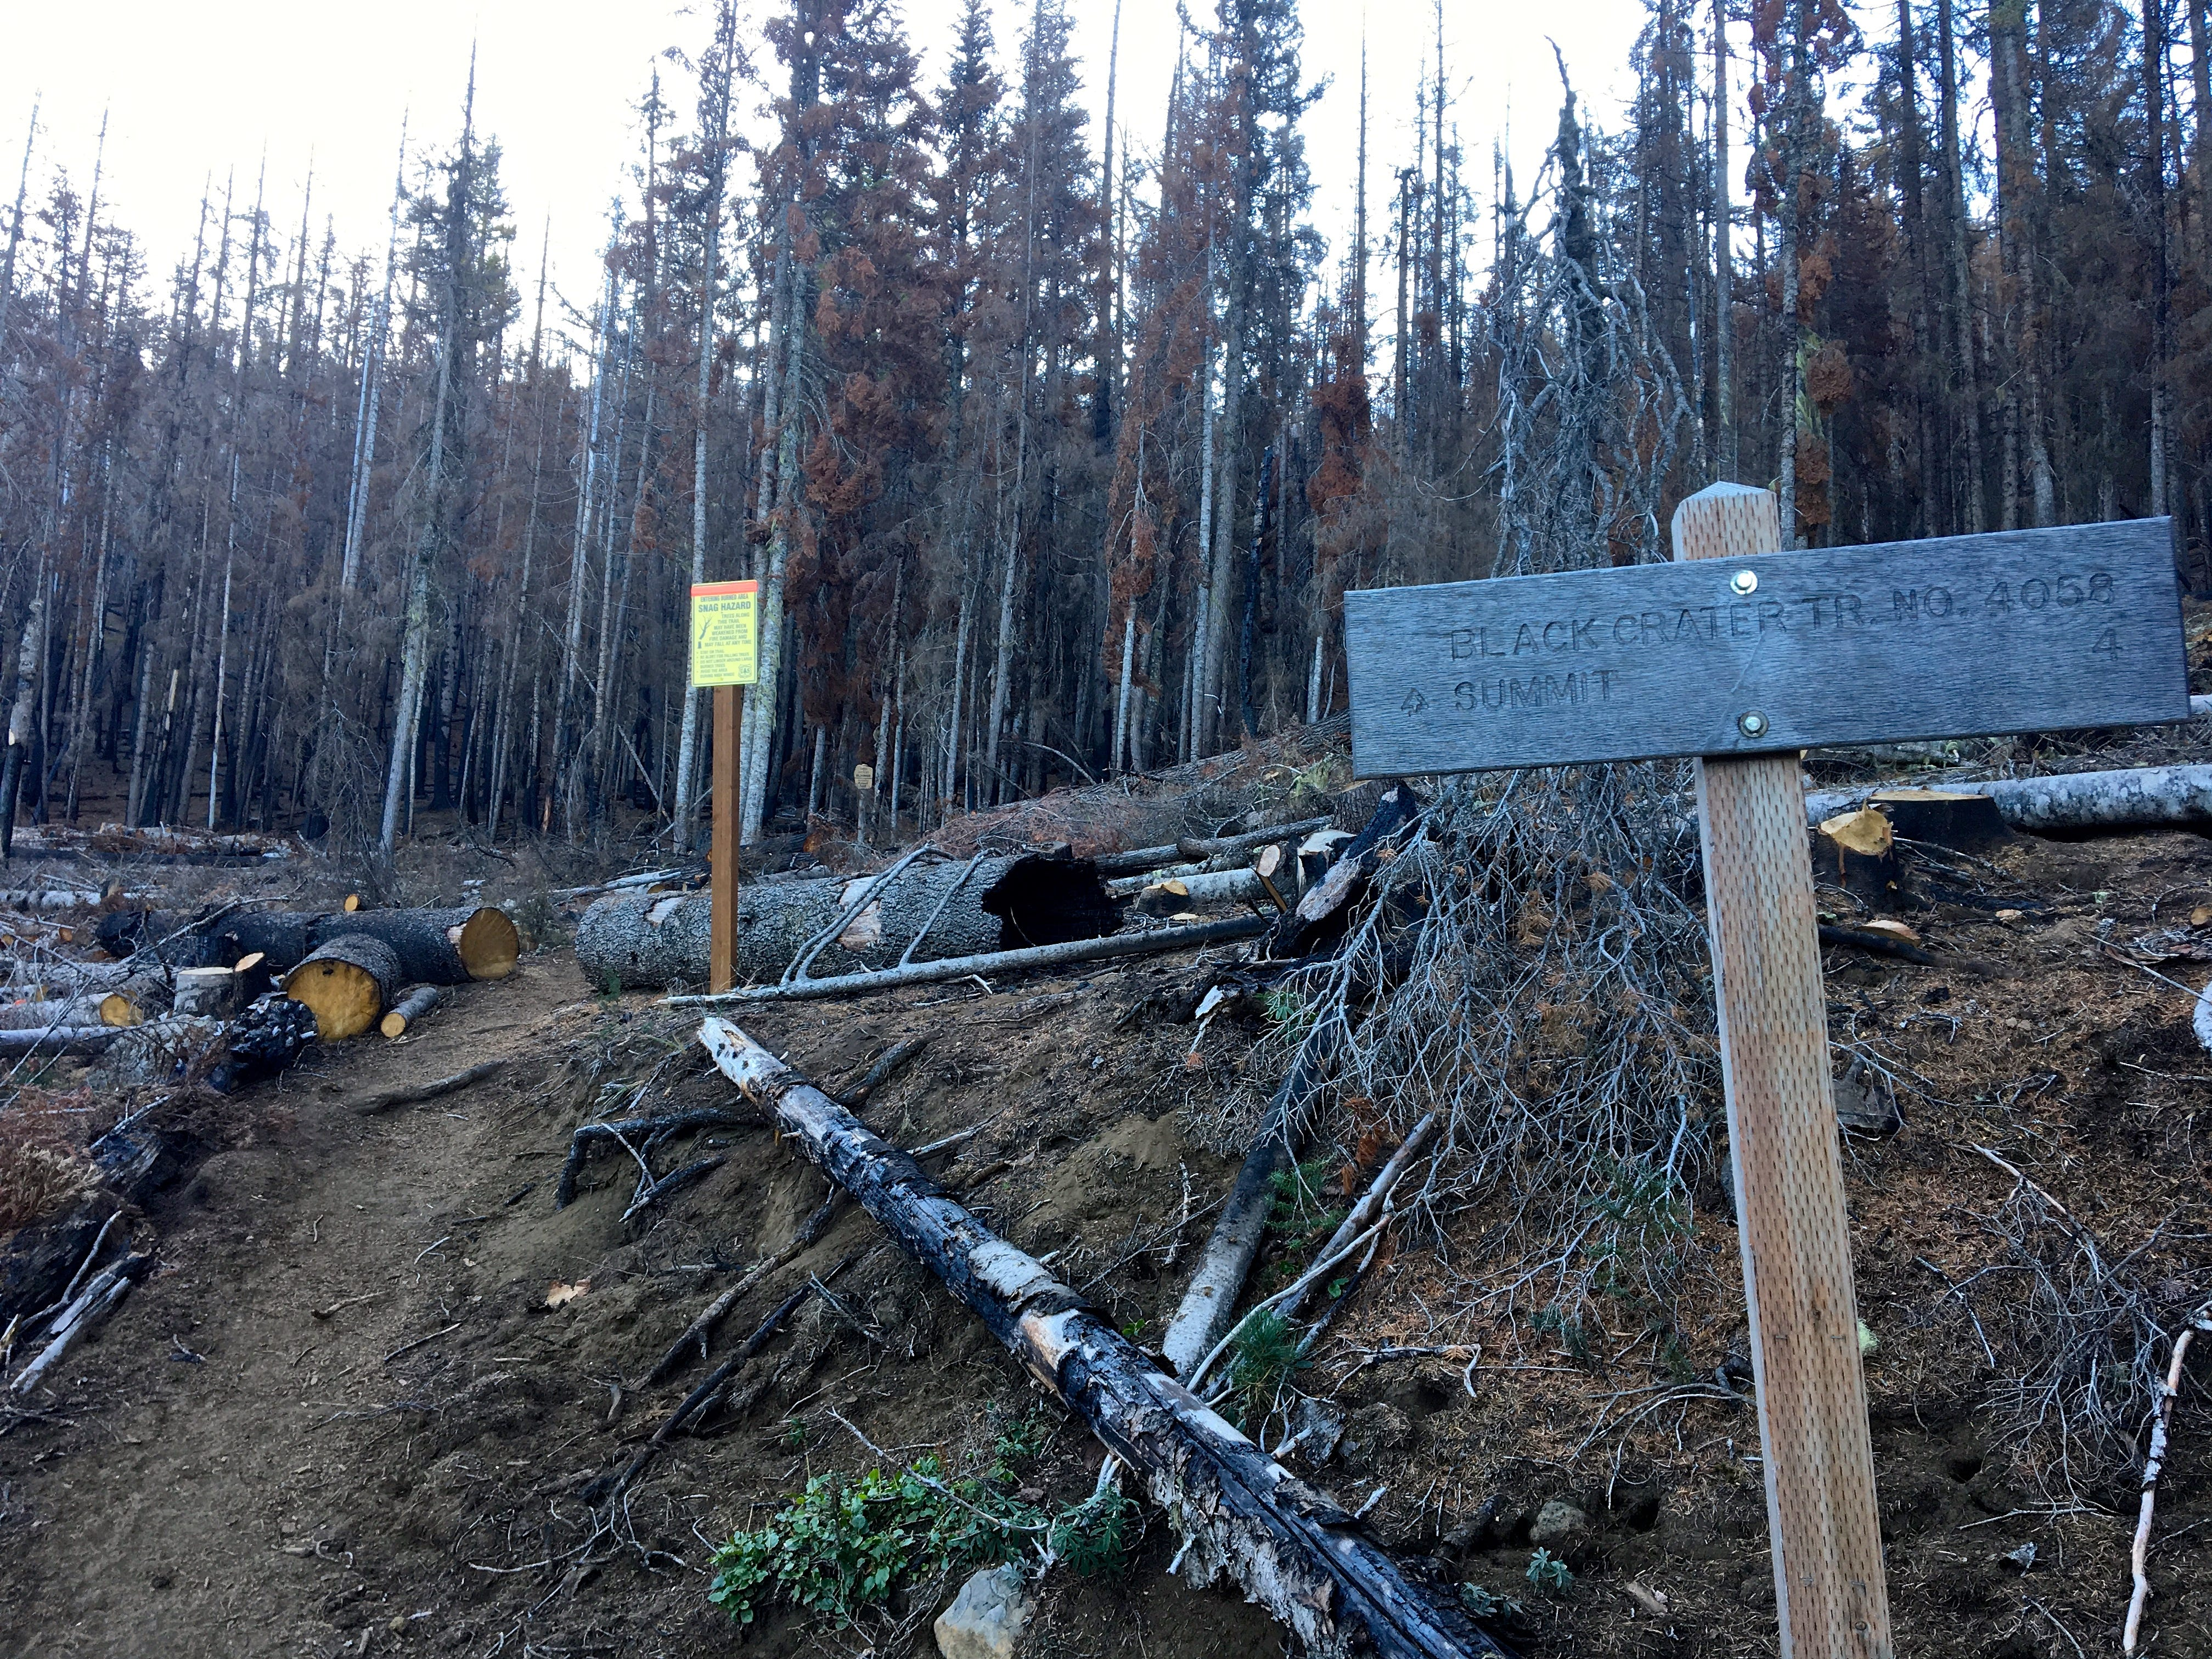 Trailhead of Black Crater Trail west of Sisters following damage from Milli Fire.